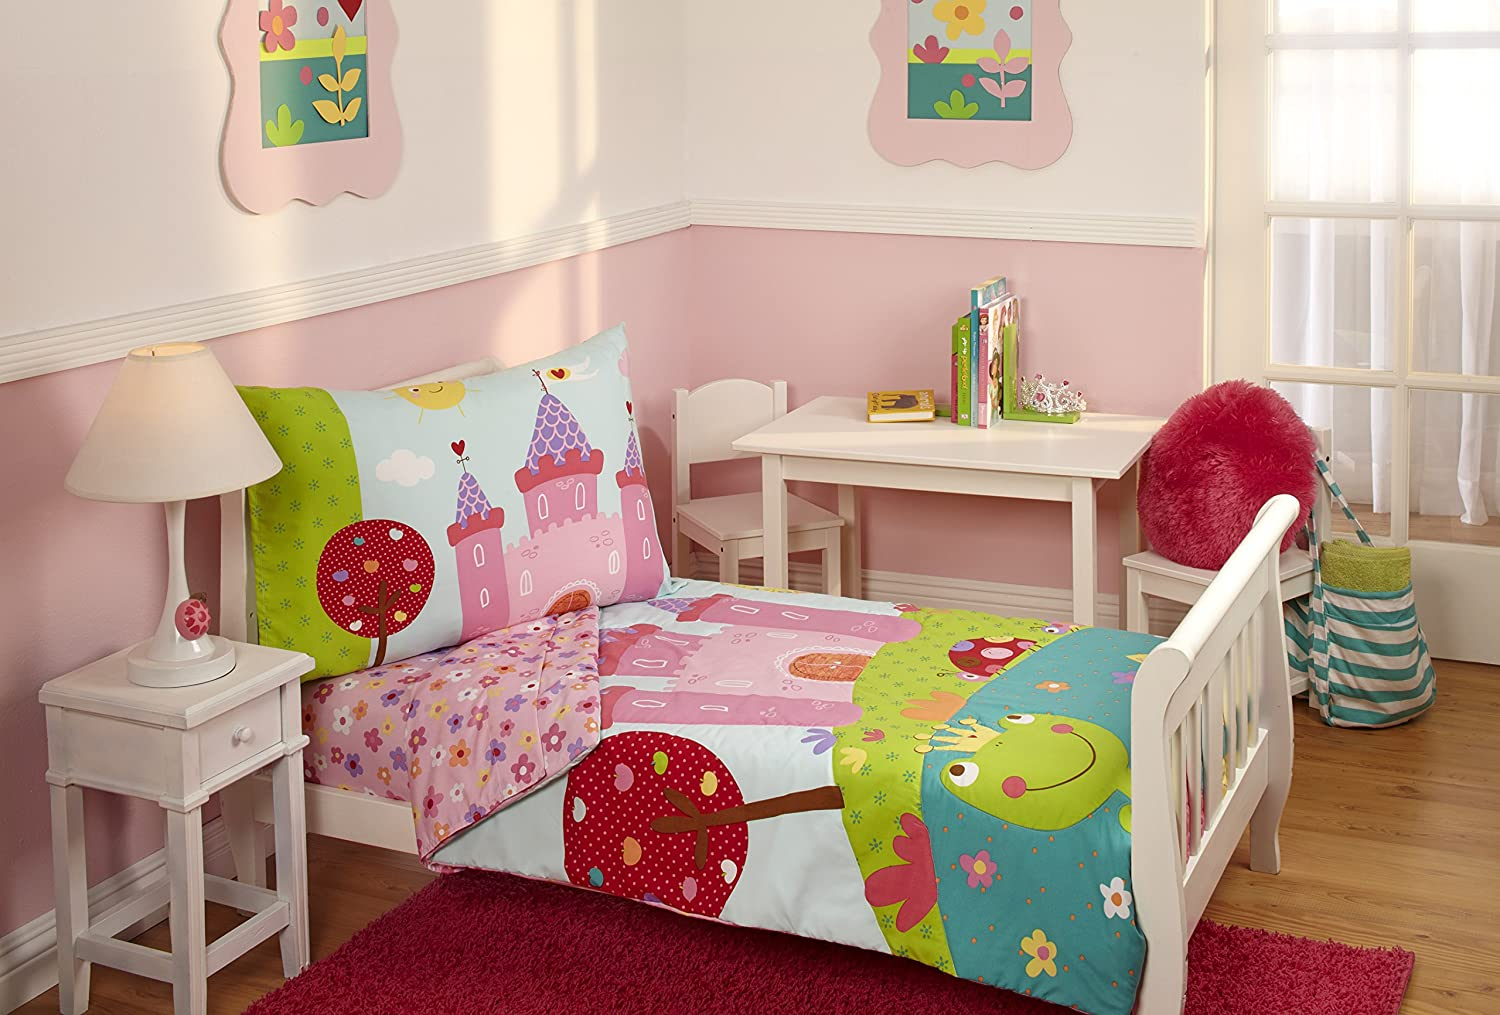 toddler bedroom.  Amazon com Everything Kids Toddler Bedding Set Fairytale Baby